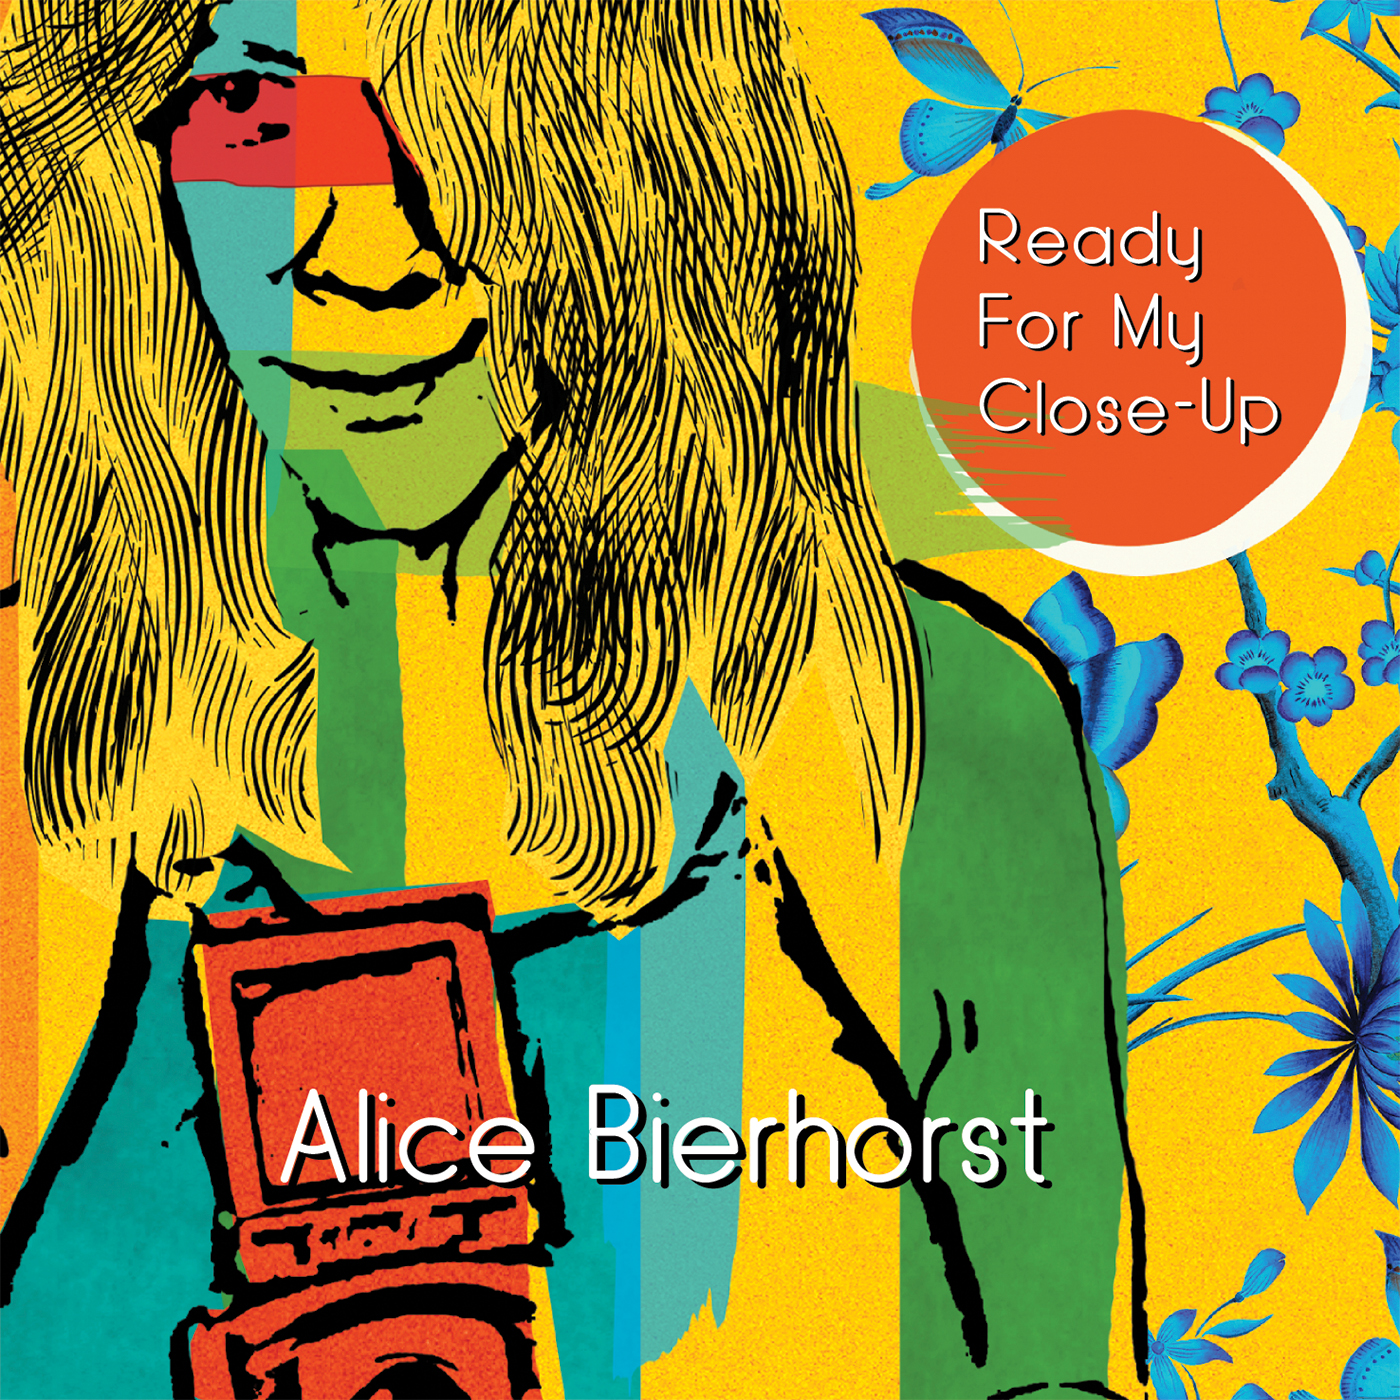 Alice bierhorst, ready for my close-up, 2018,  Producer, mixer, drummer all tracks; arranger on tracks 1,2,5,9.  LIsten at: https://open.spotify.com/album/540laZ7YWPsjOHRJ8ino33